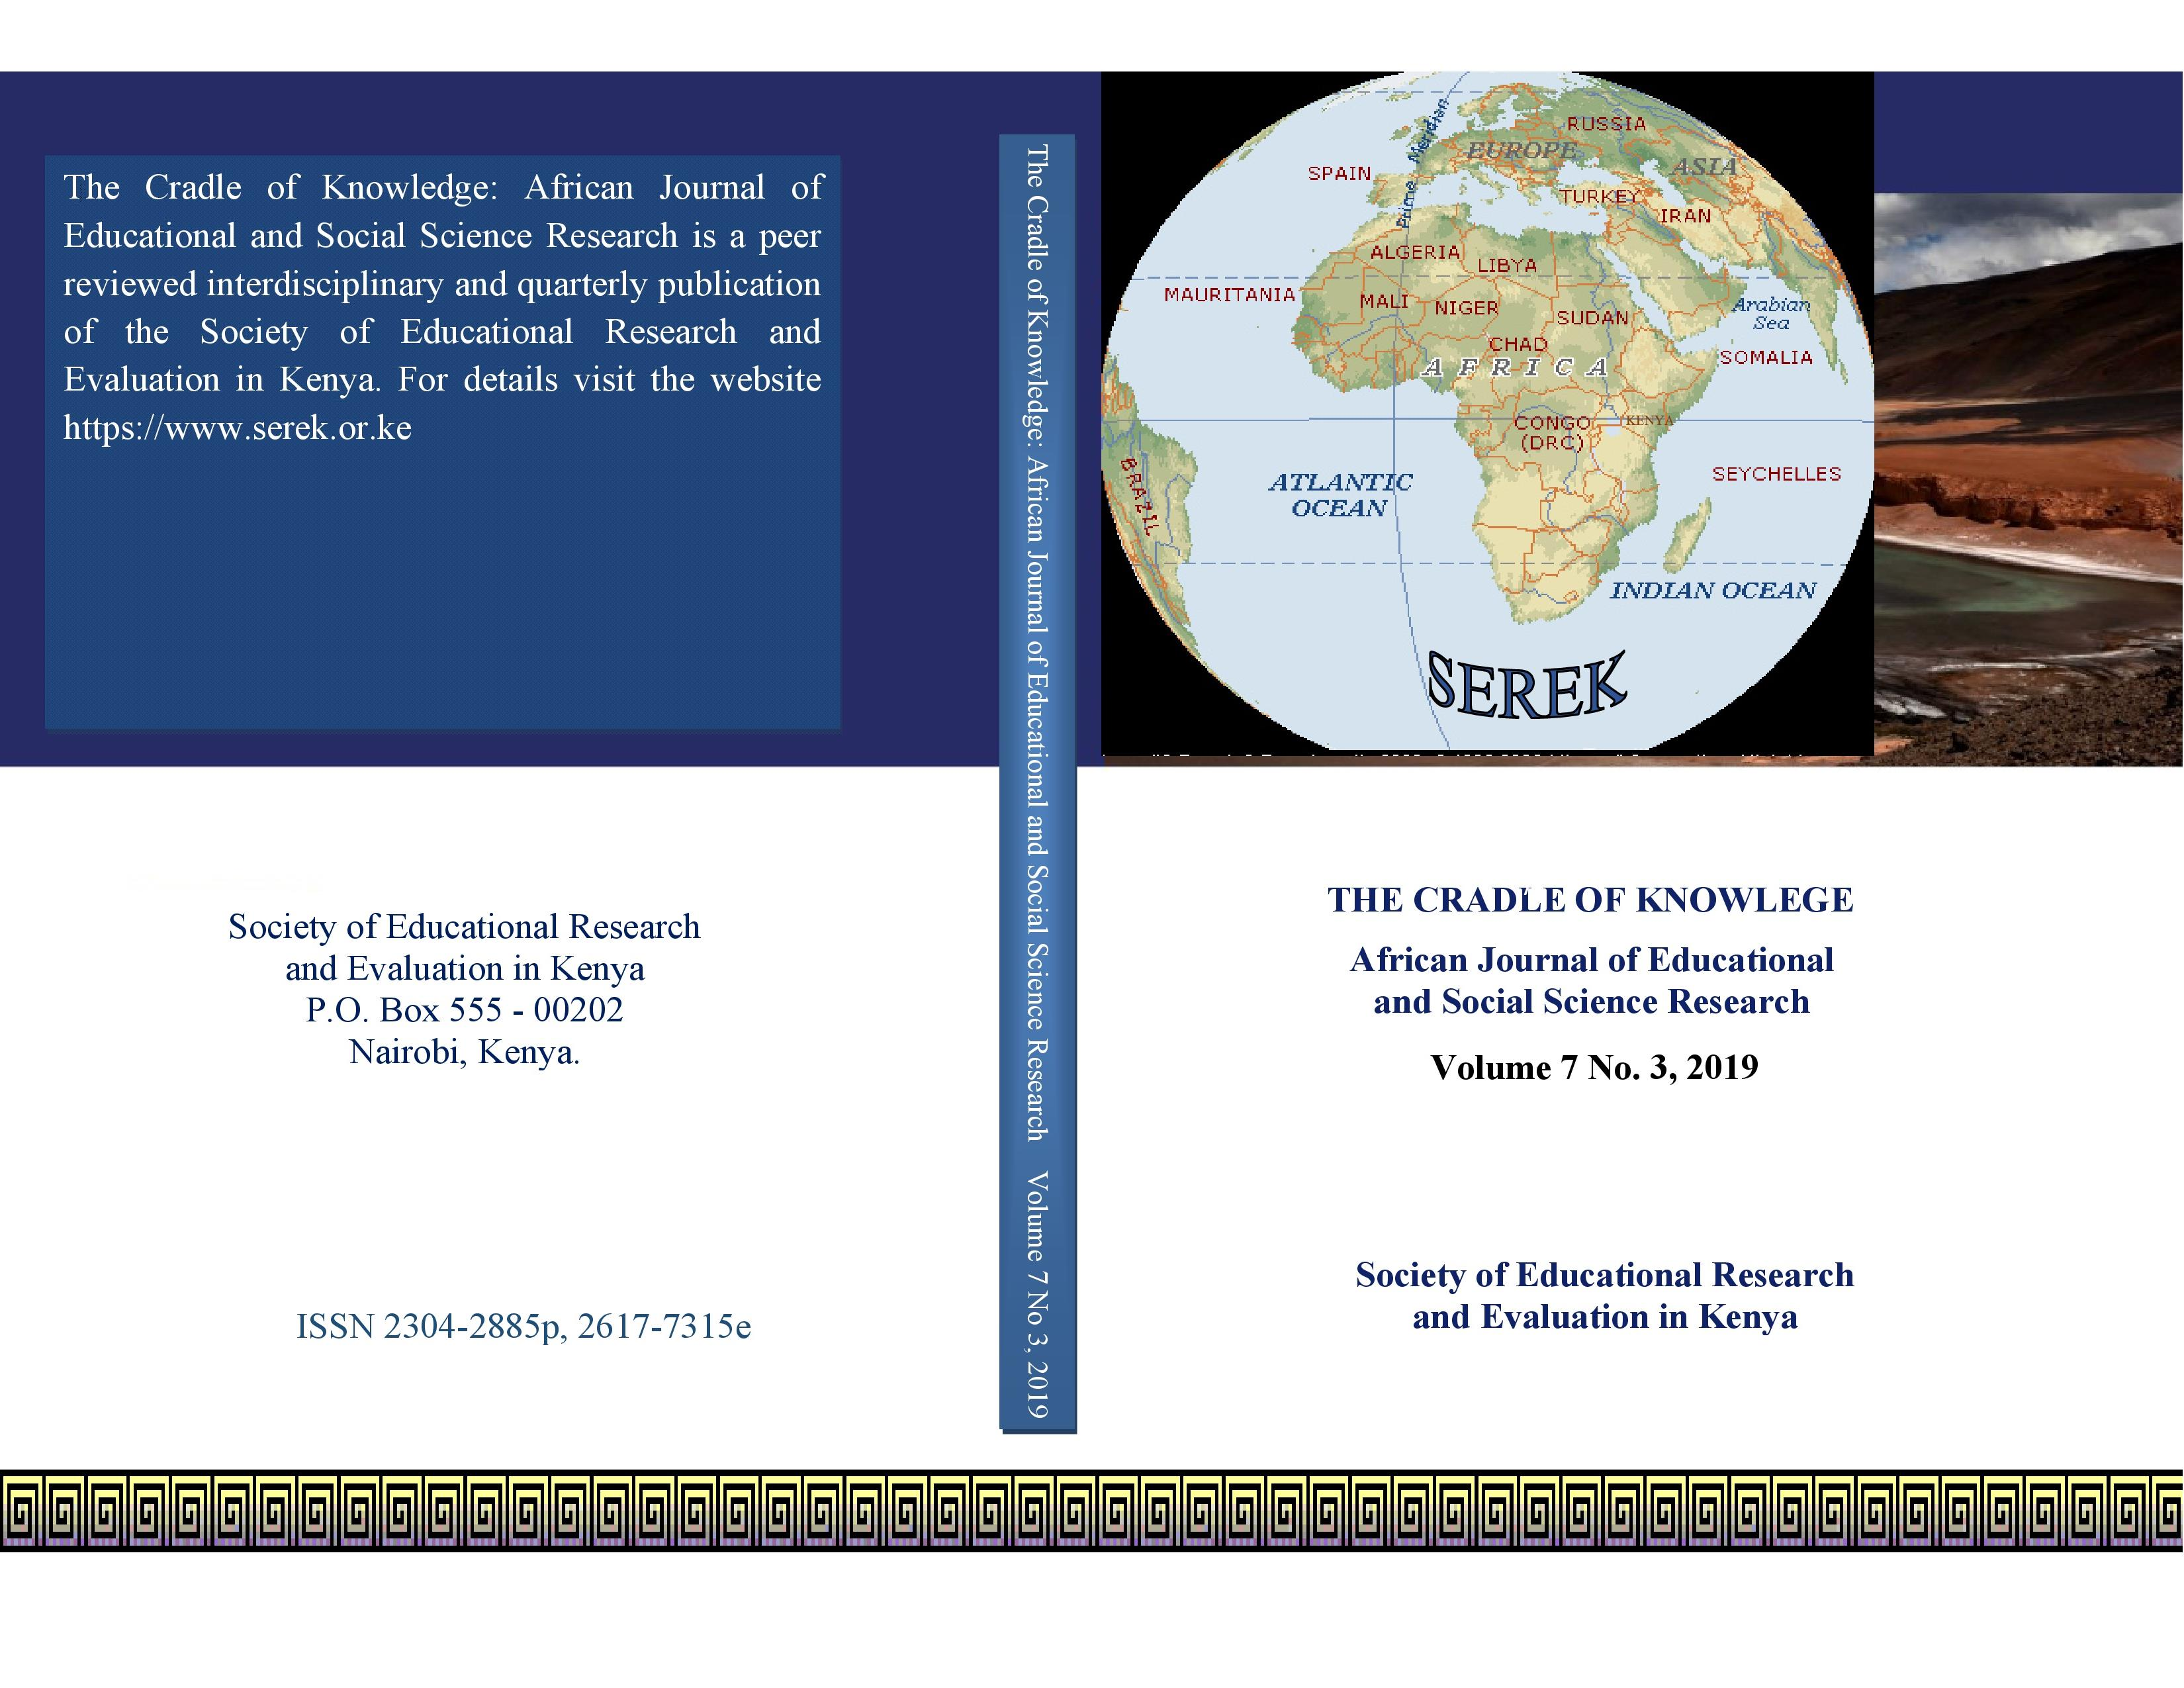 The Cradle of Knowledge: African Journal of Educational and Social Science Research